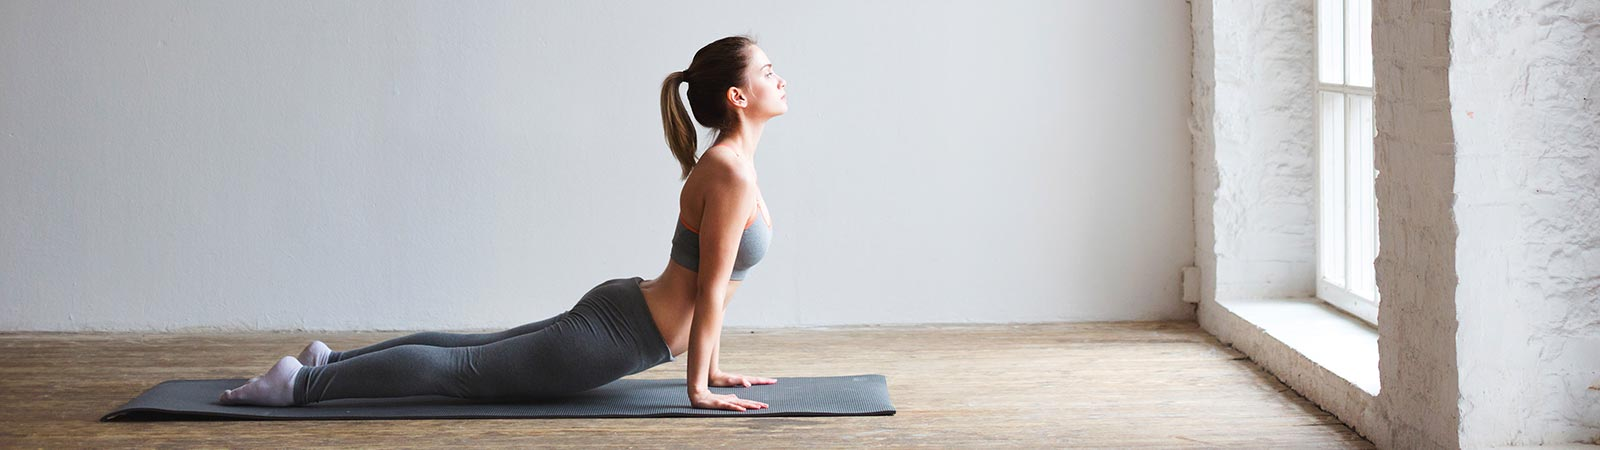 Lose Weight and Strengthen Your Body with Hot Yoga